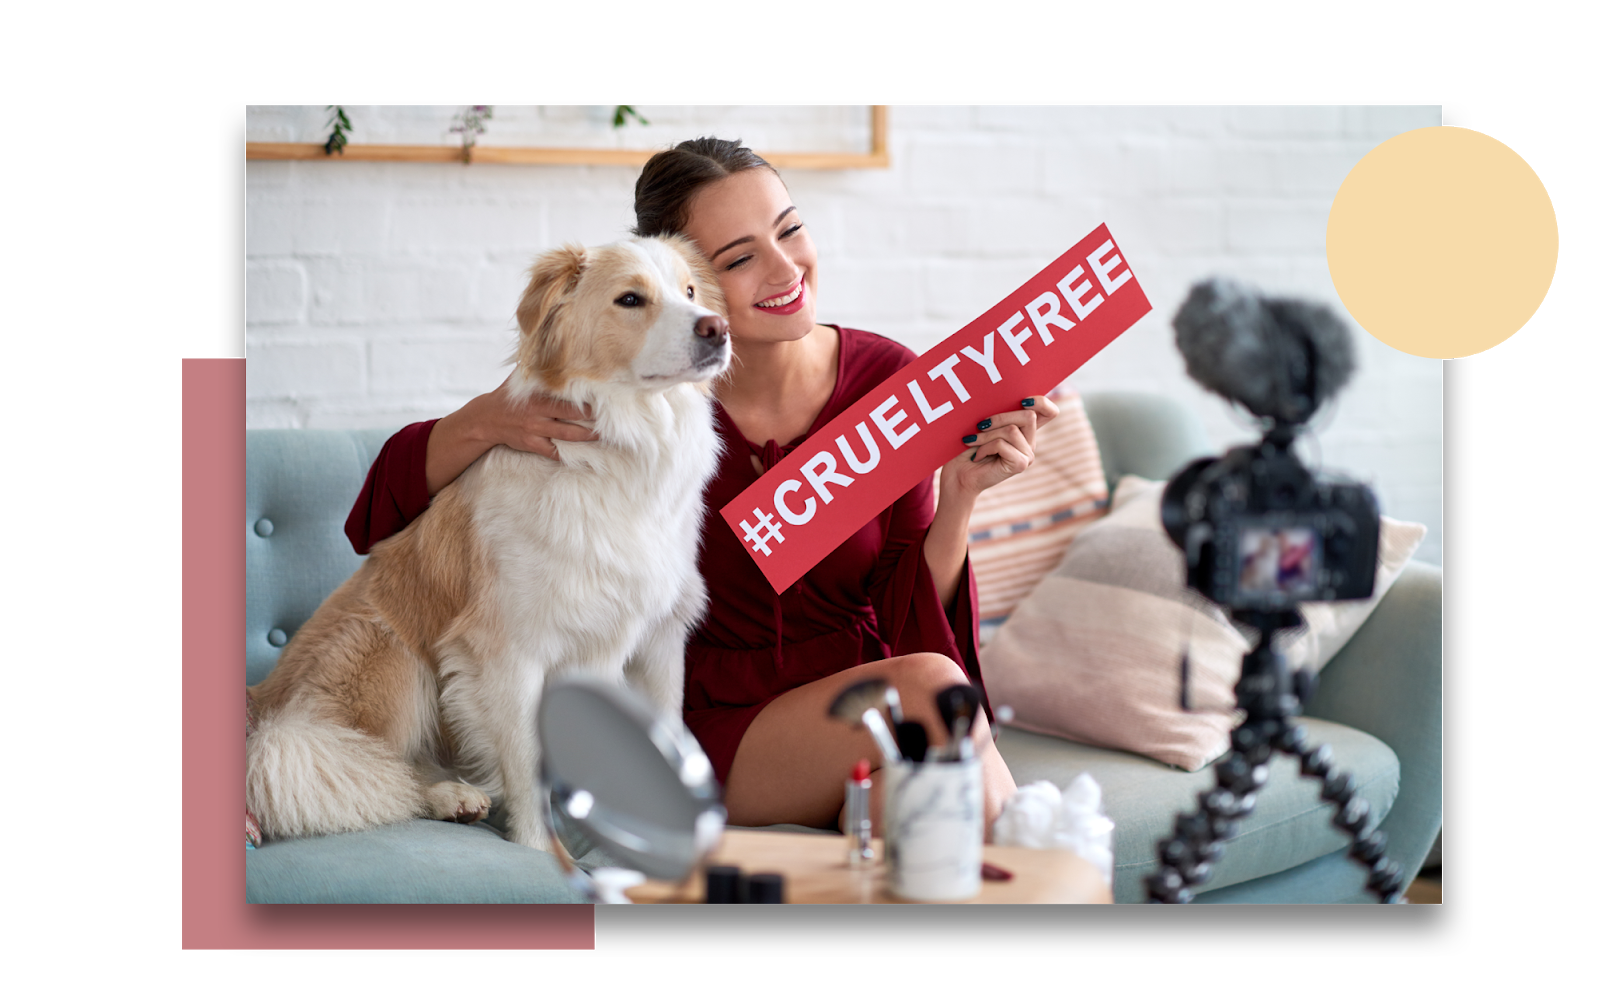 A young woman that is an influencer is recording herself during a make up tutorial or review. She is sitting on her couch with her dog beside her. As she smiles at the camera and cuddles up to the dog, she holds up a sign that says #crueltyfree